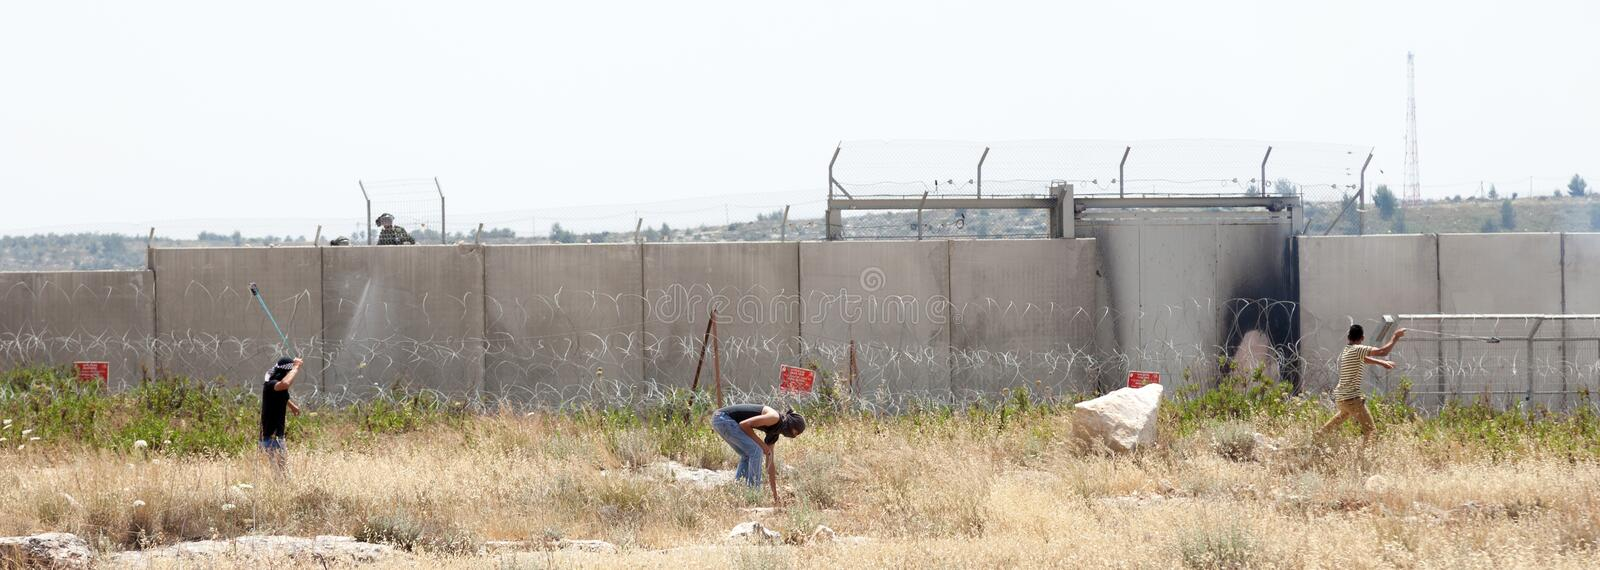 Palestinian Protest By The Wall Of Separation West Bank Editorial Image